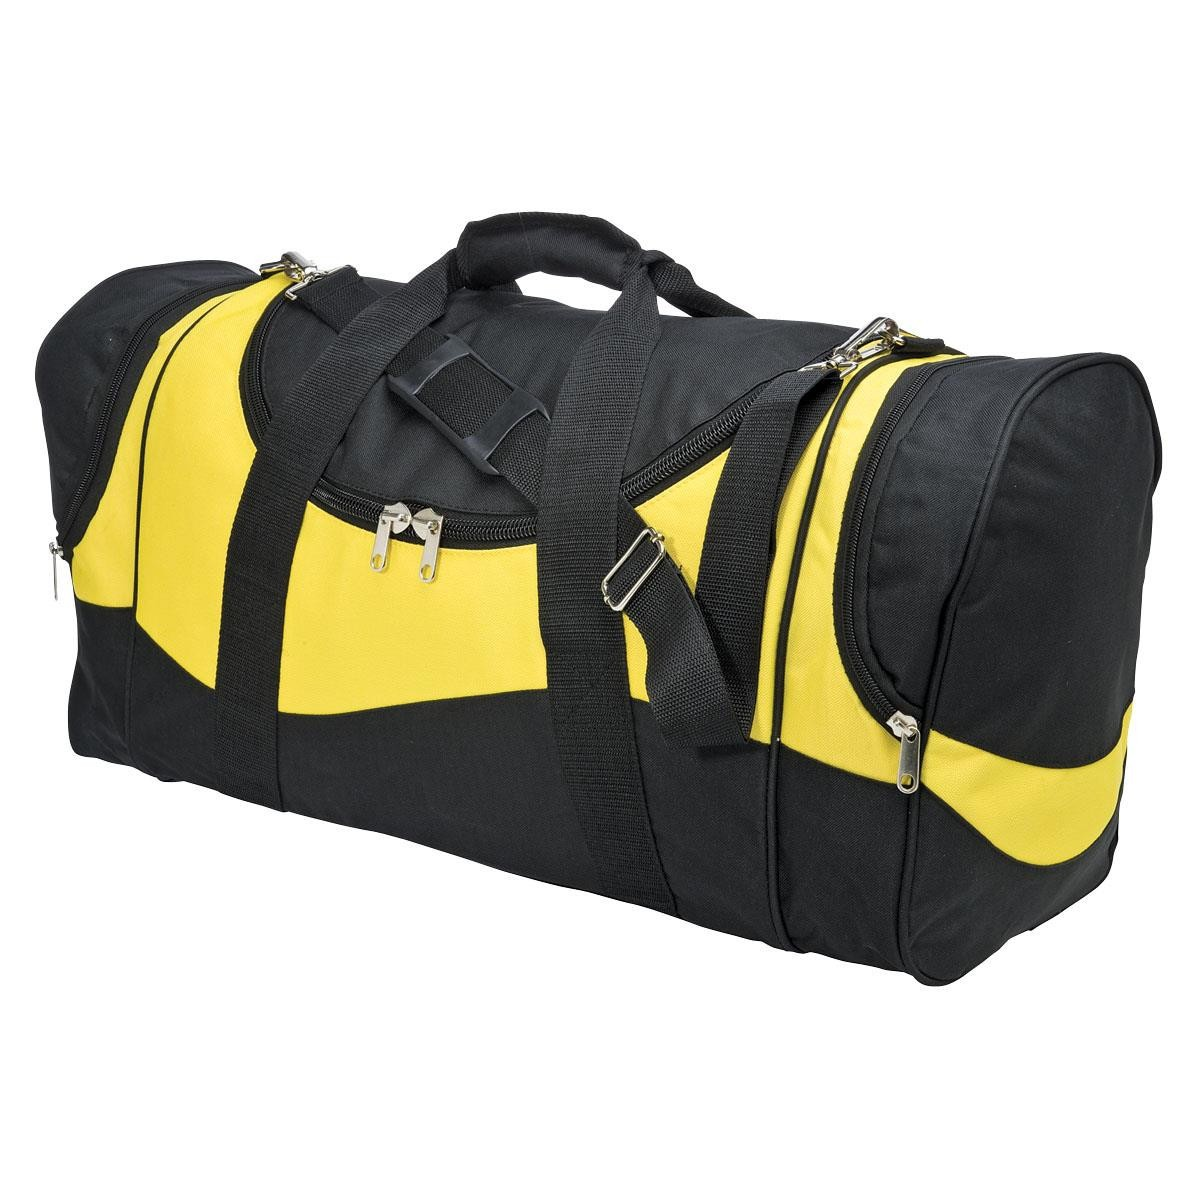 Sunset Sports Bag - Black & Gold